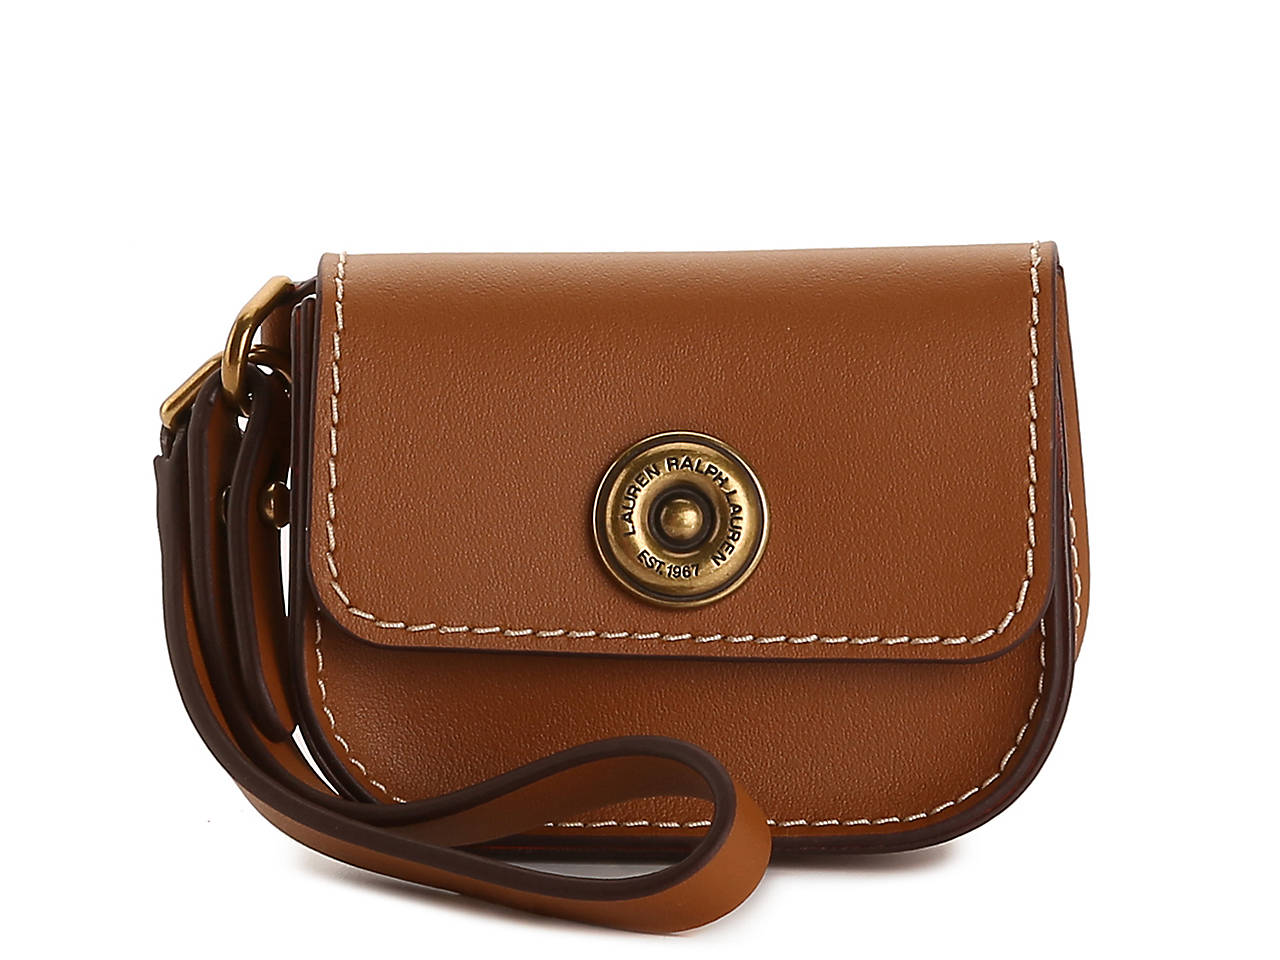 Lauren Ralph Lauren Millbrook Leather Coin Purse Women s Handbags ... cb5826637f9